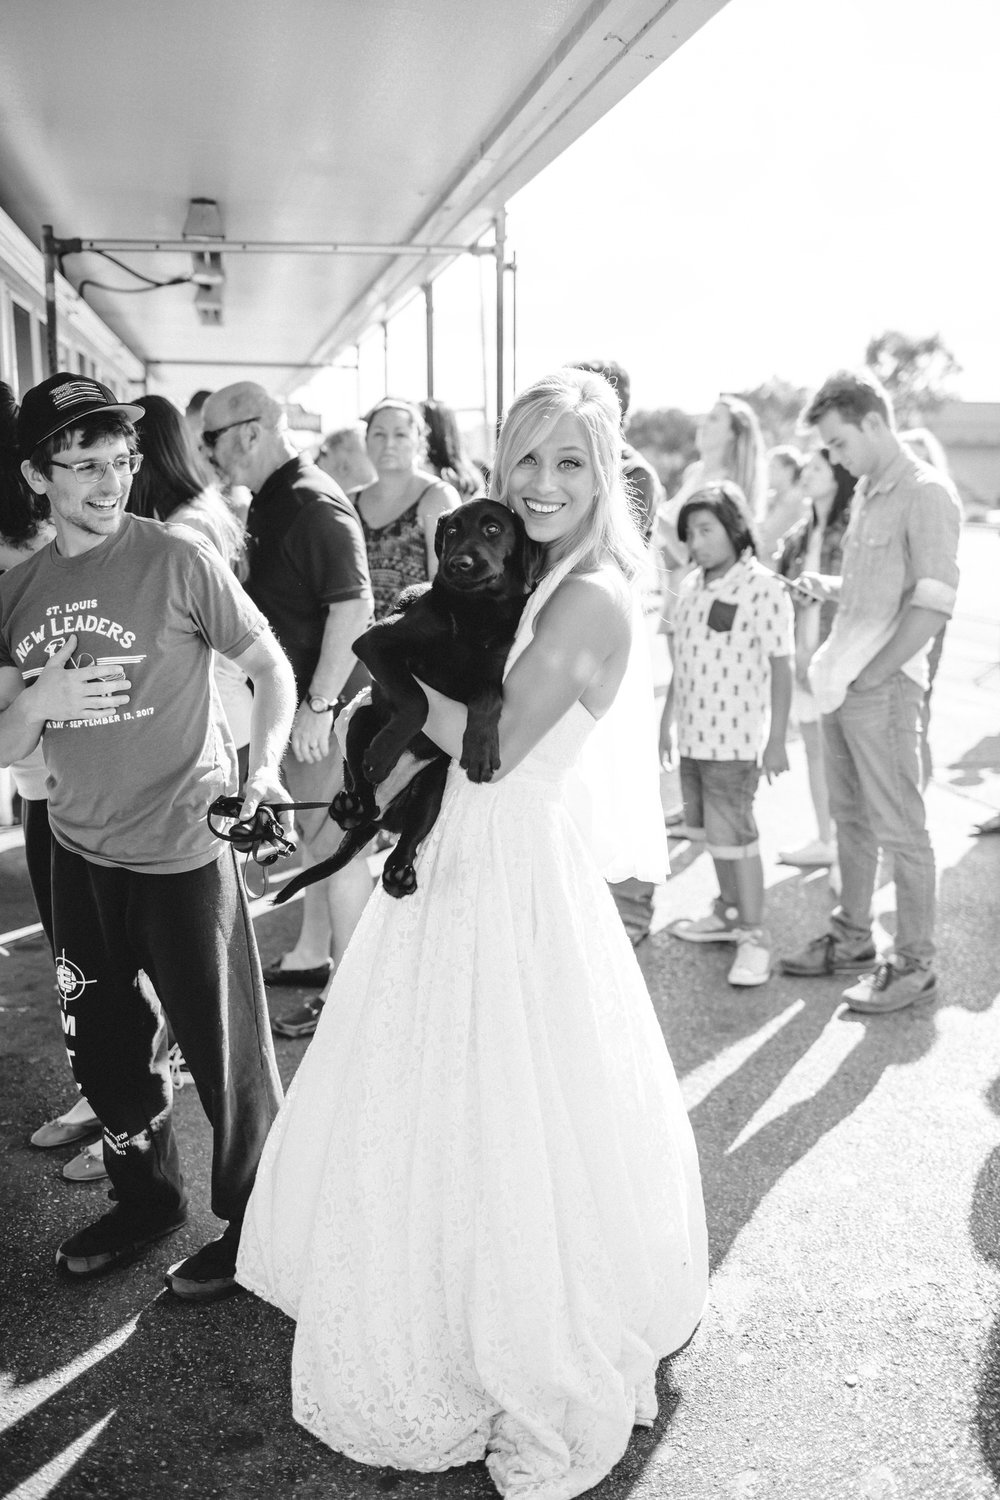 Bride at Ted Drewes with Puppy. St Louis MIssouri